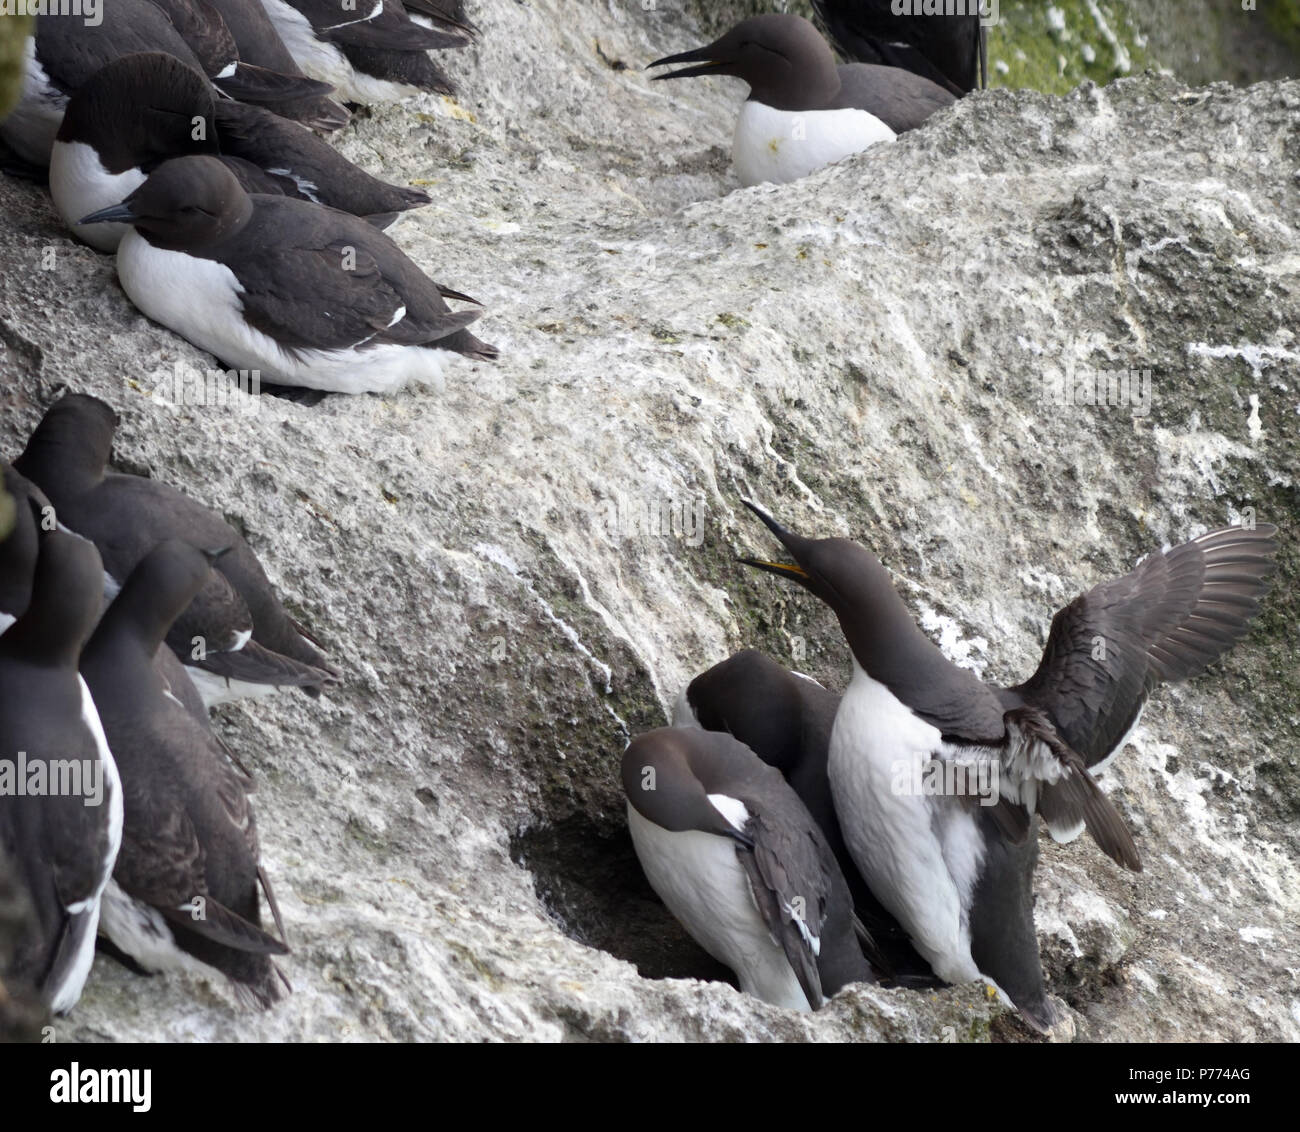 Guillemots (Uria aalge) at their nests on ledges on the basalt sea cliffs at Carrick-a-Rede. Carrick-a-Rede, Ballycastle, Antrim, Northern Ireland. - Stock Image